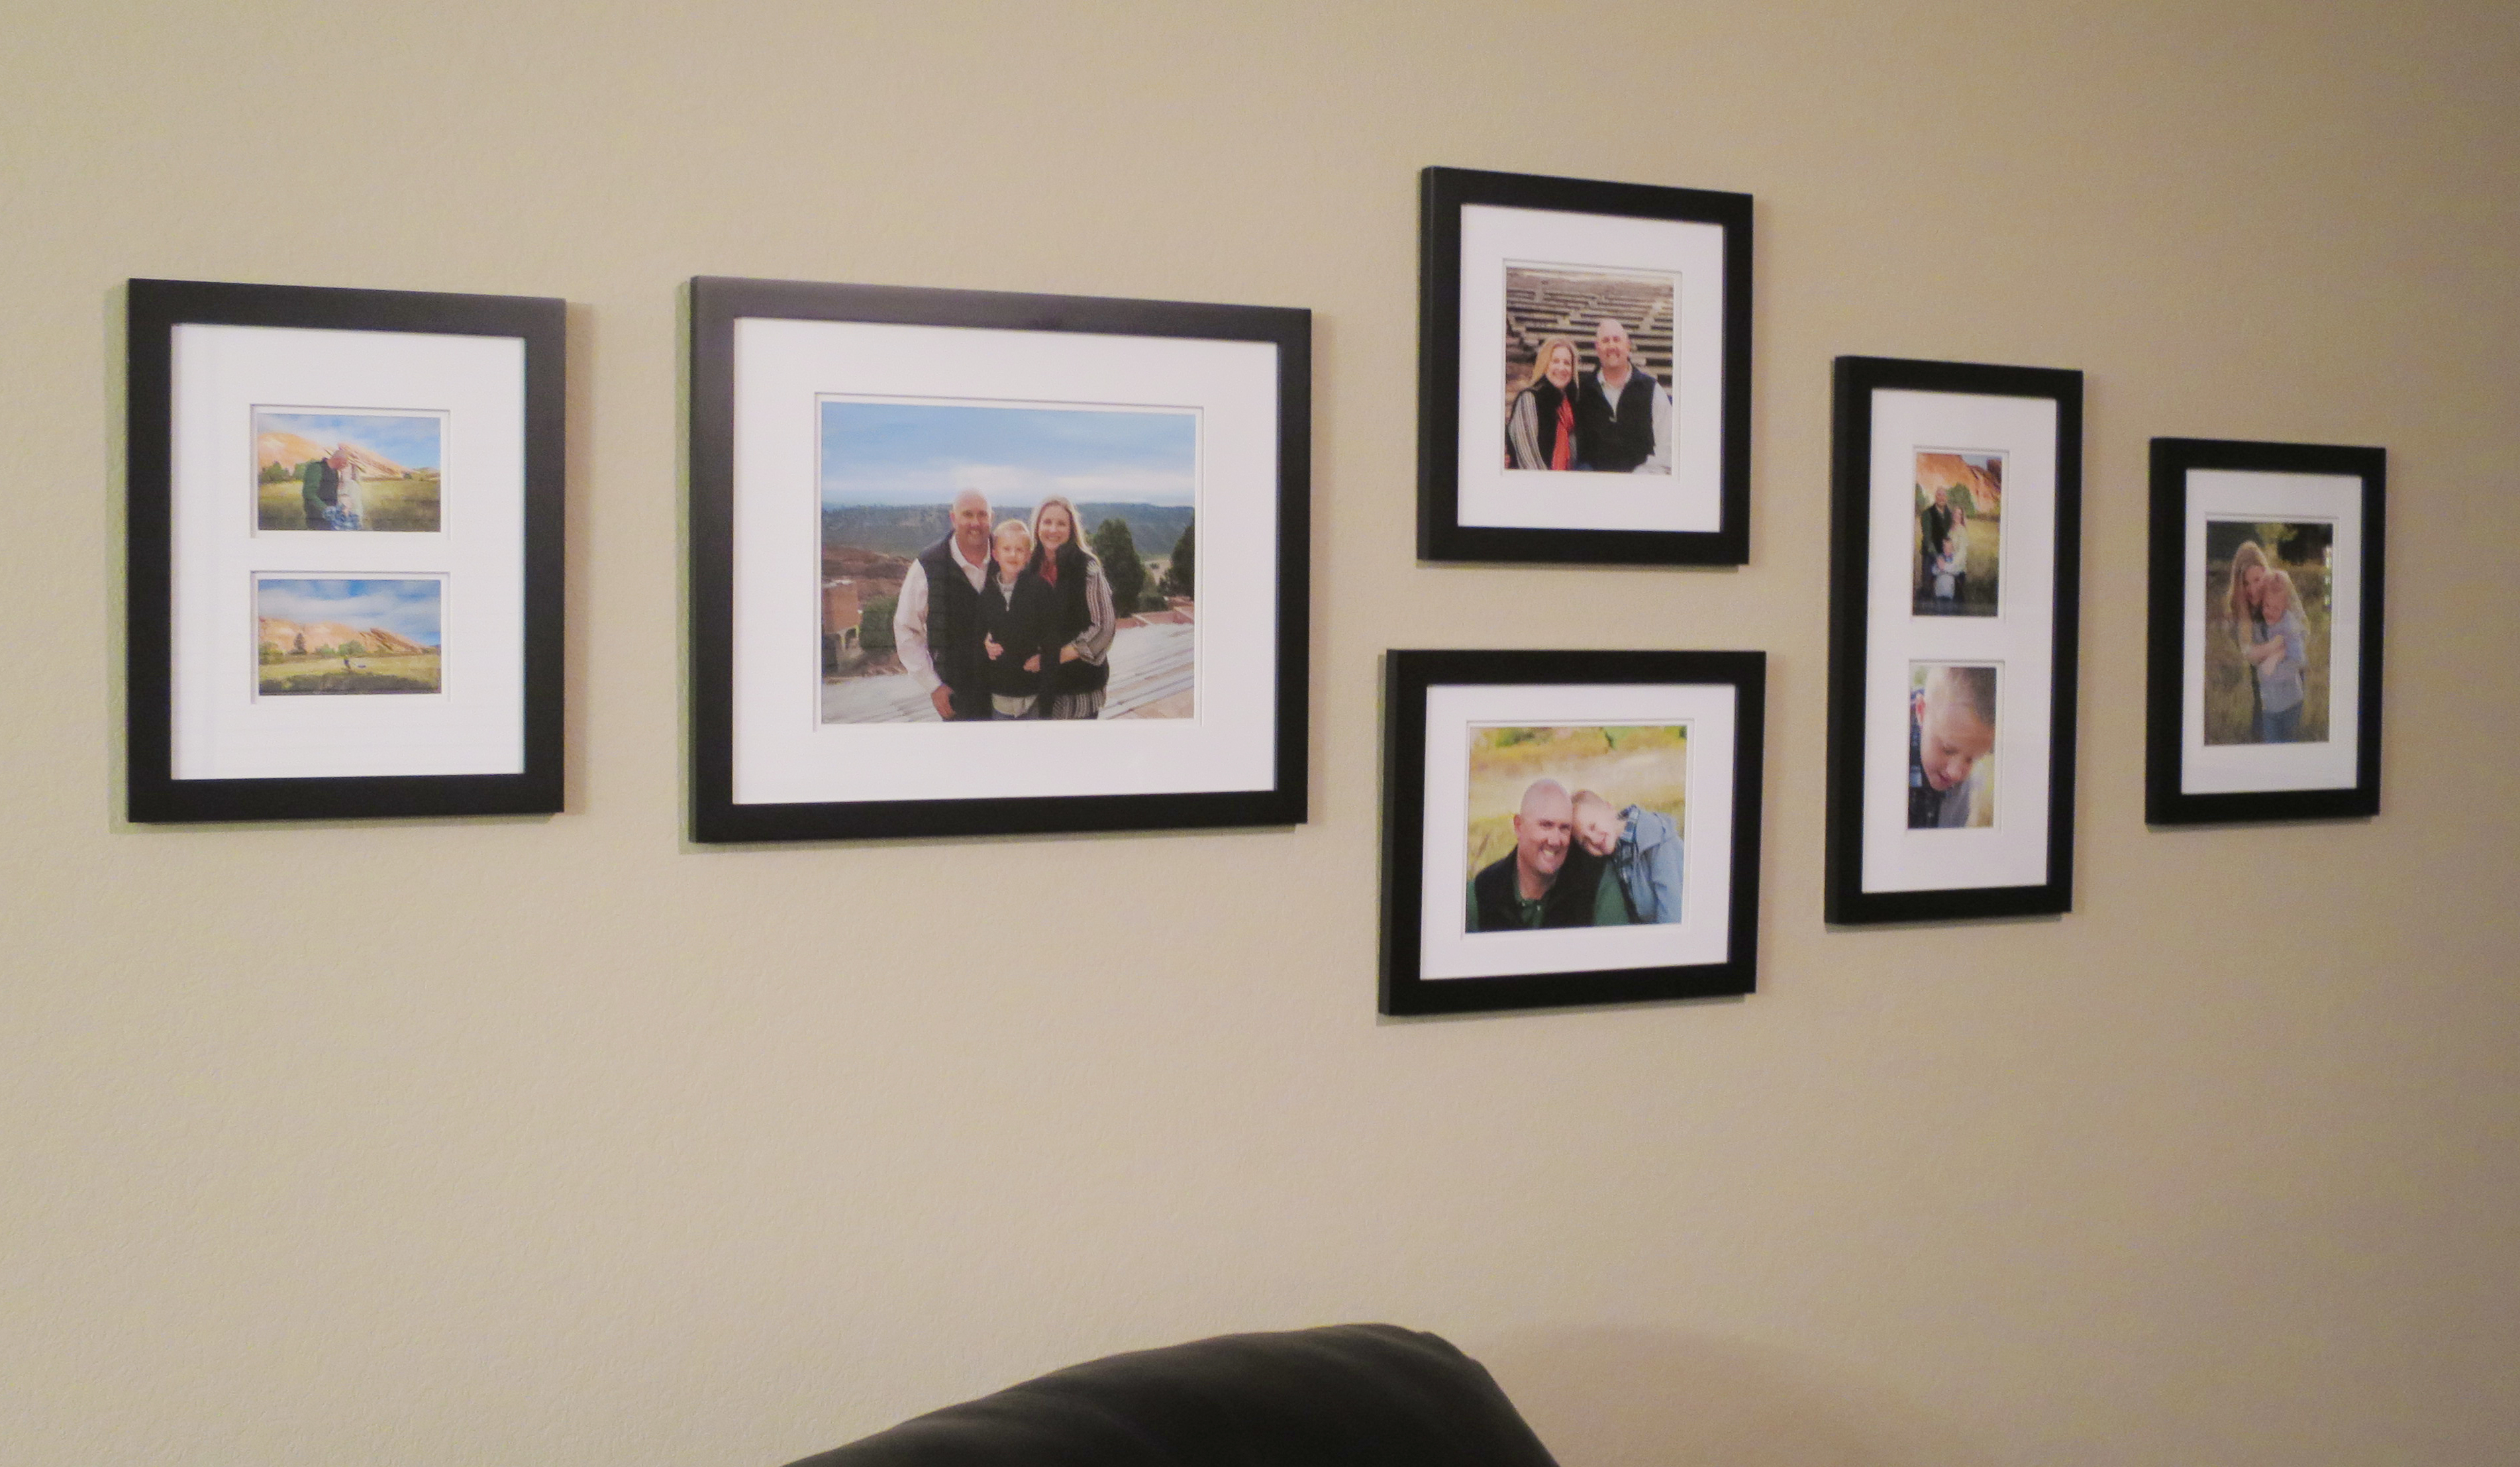 Broomfield Family Photography @ Red Rocks | Wall Display & In My Client's Words